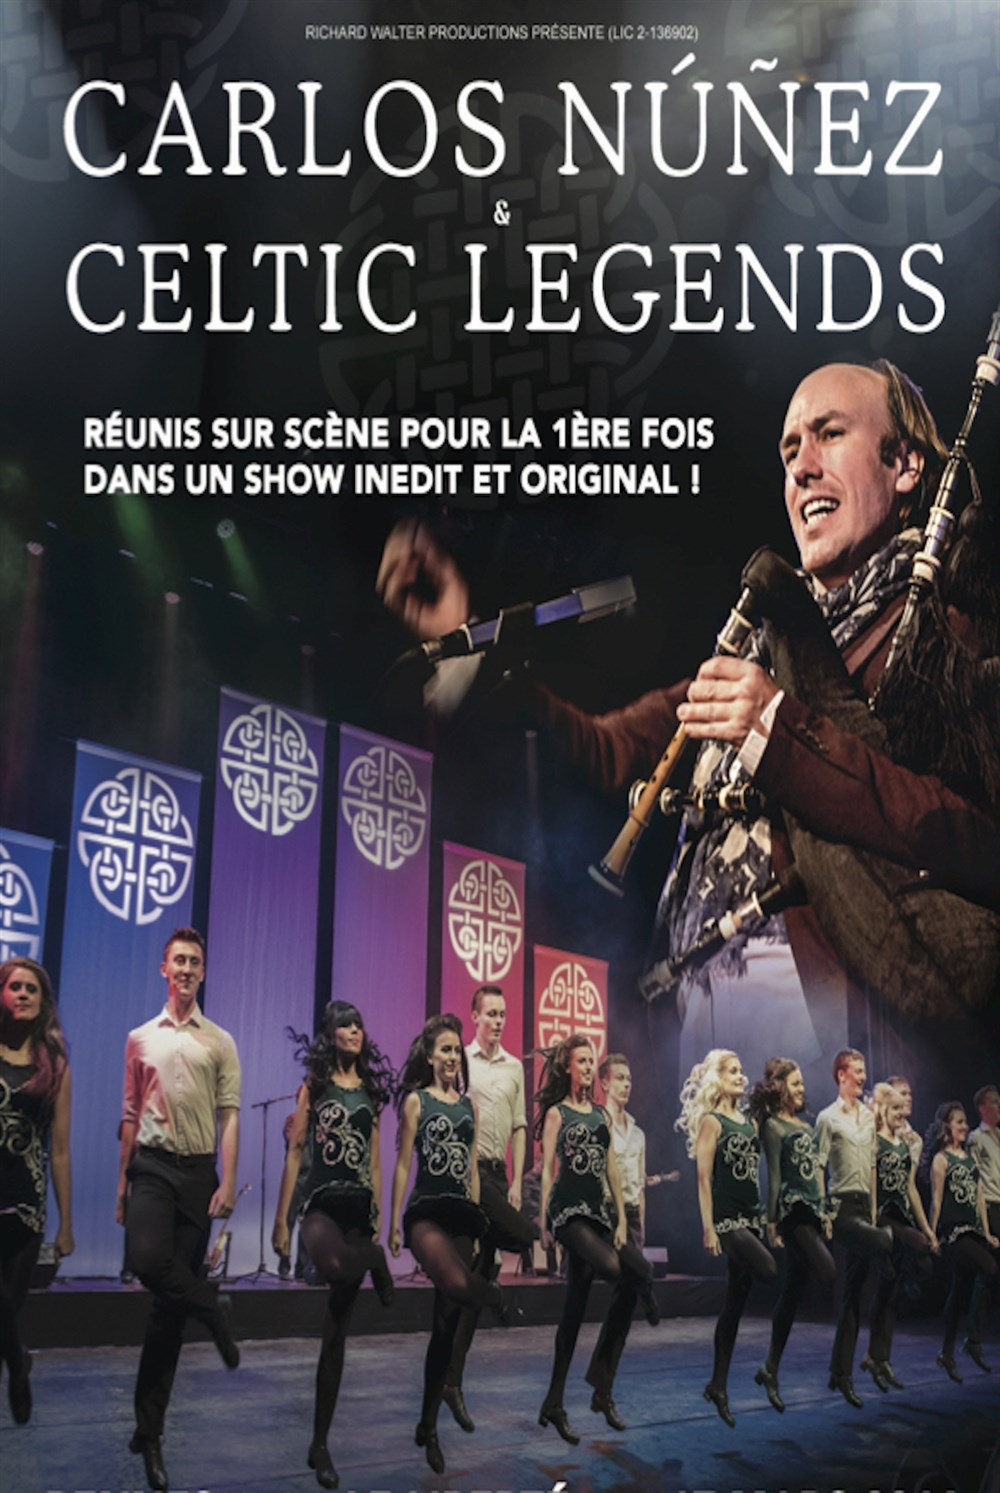 Celtic legends et Carlos Nunez